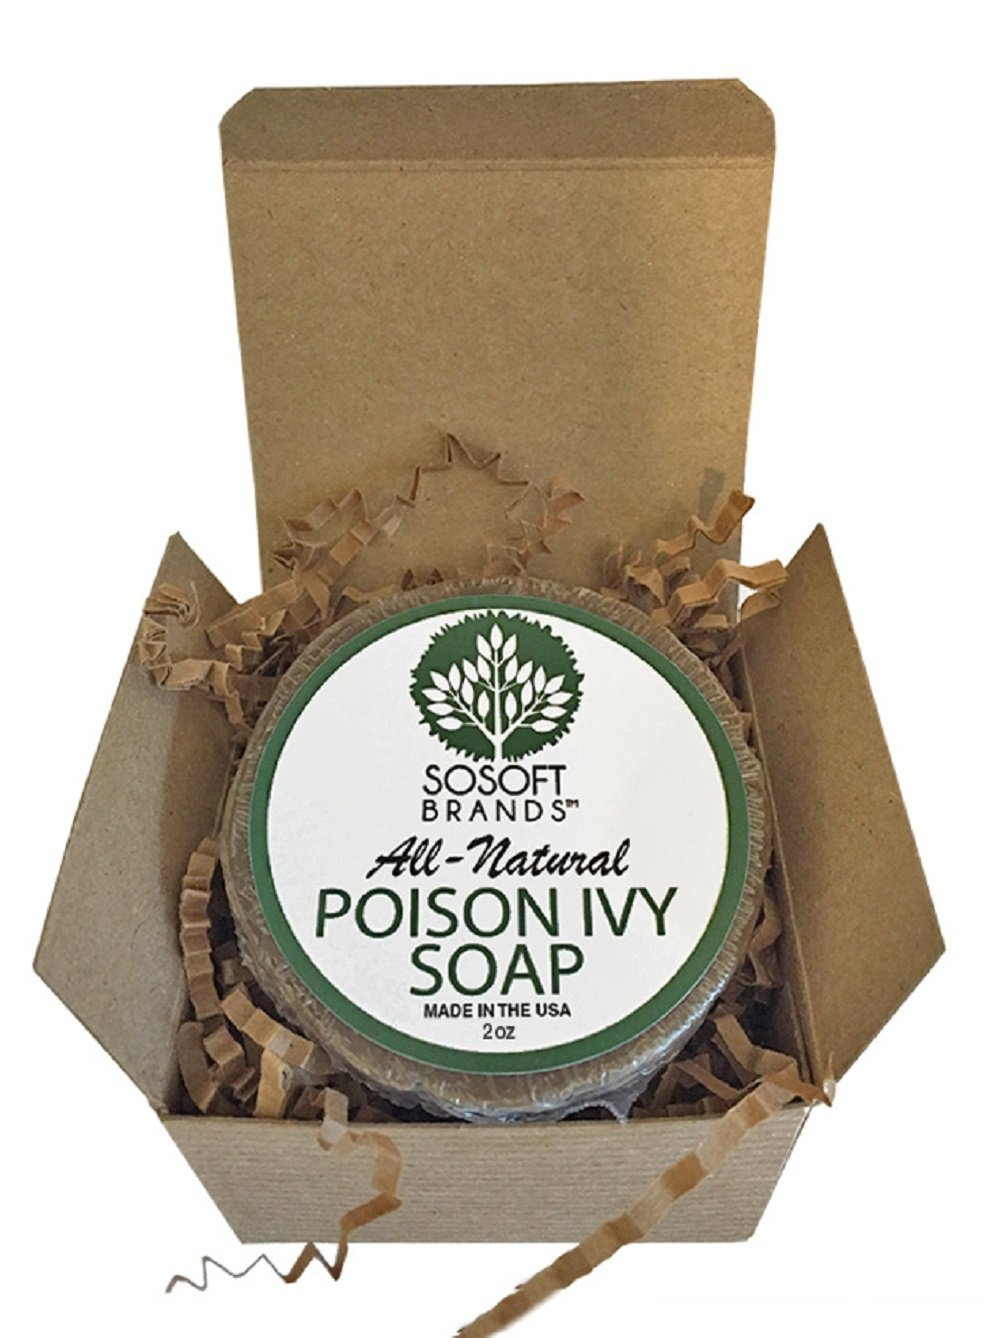 SoSoft Brands All-Natural Hand Crafted Poison Ivy